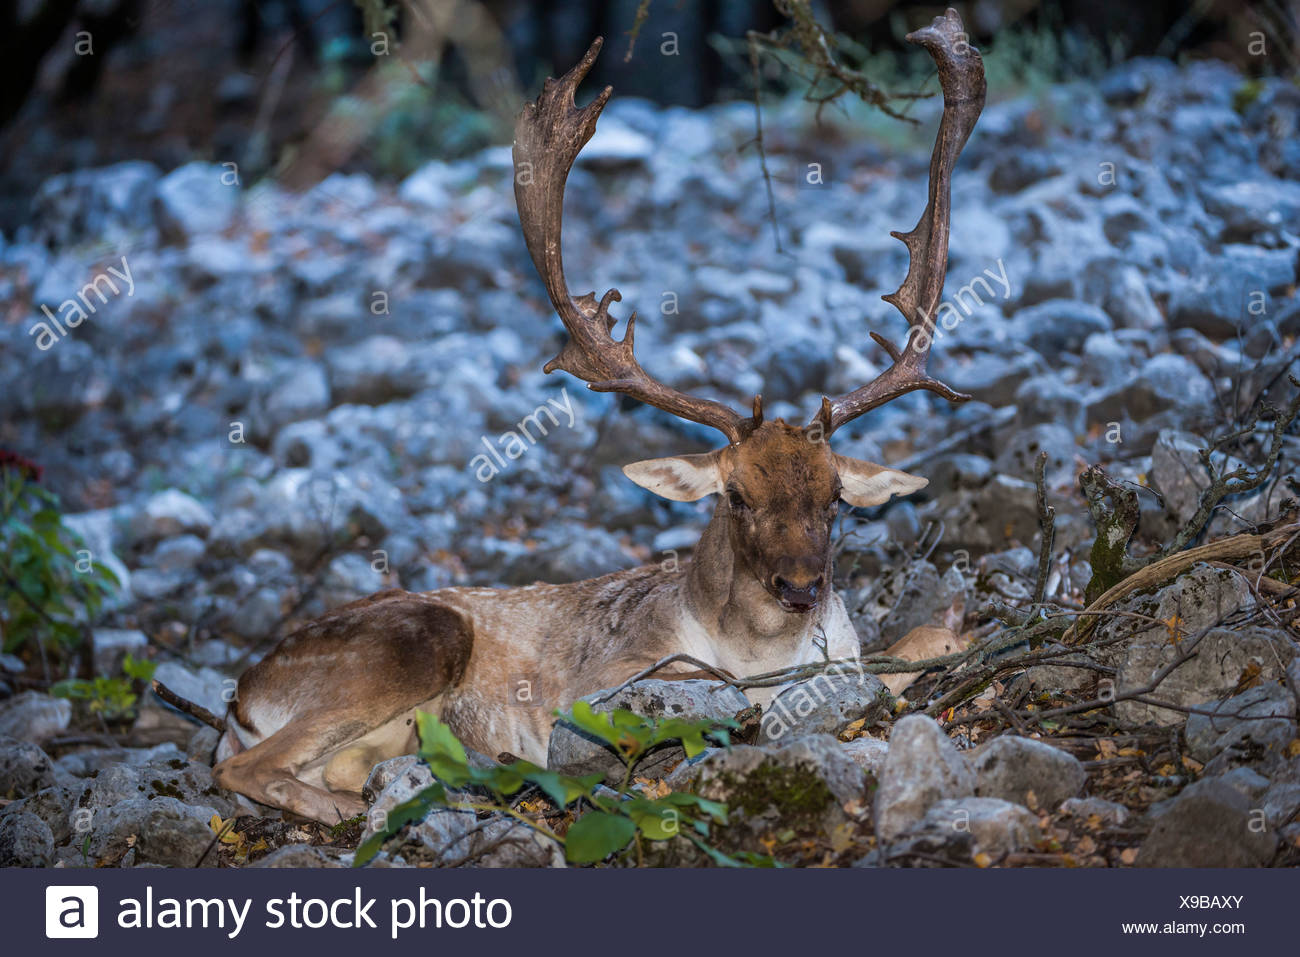 Fallow deer (Dama dama), resting, Parco delle Madonie nature reserve, Sicily, Italy - Stock Image